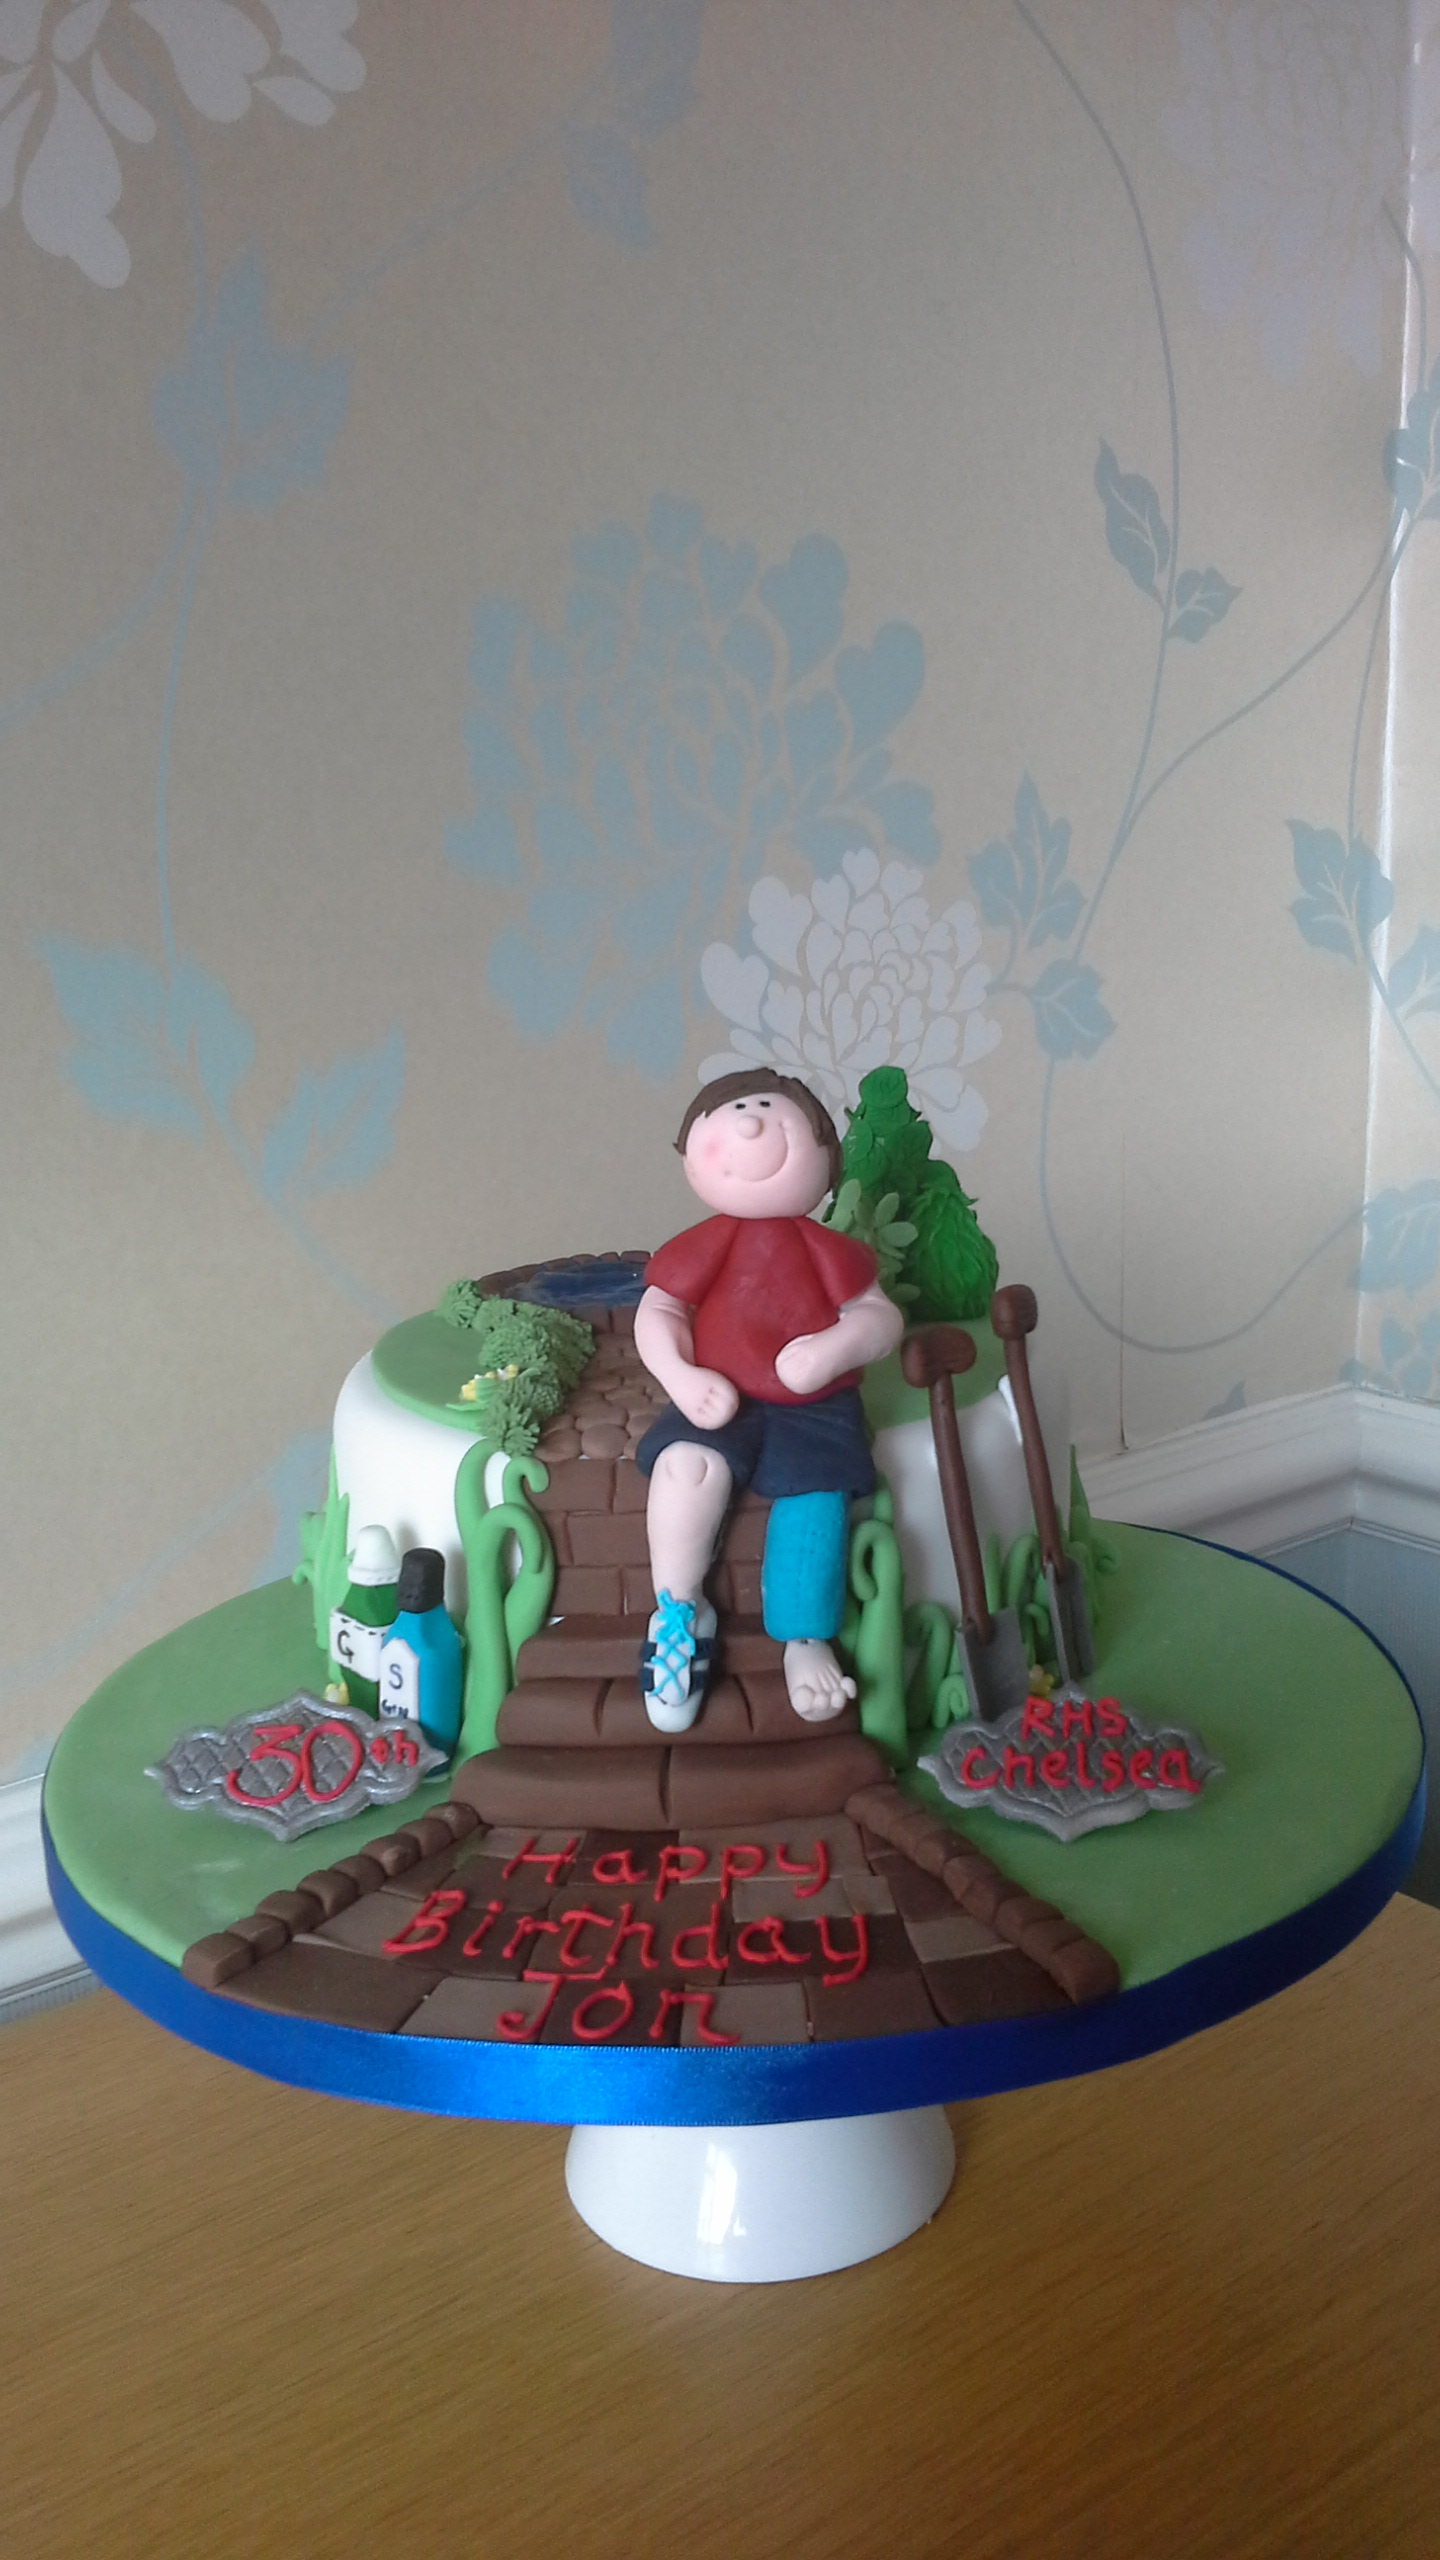 Ough What a Cake 9 General